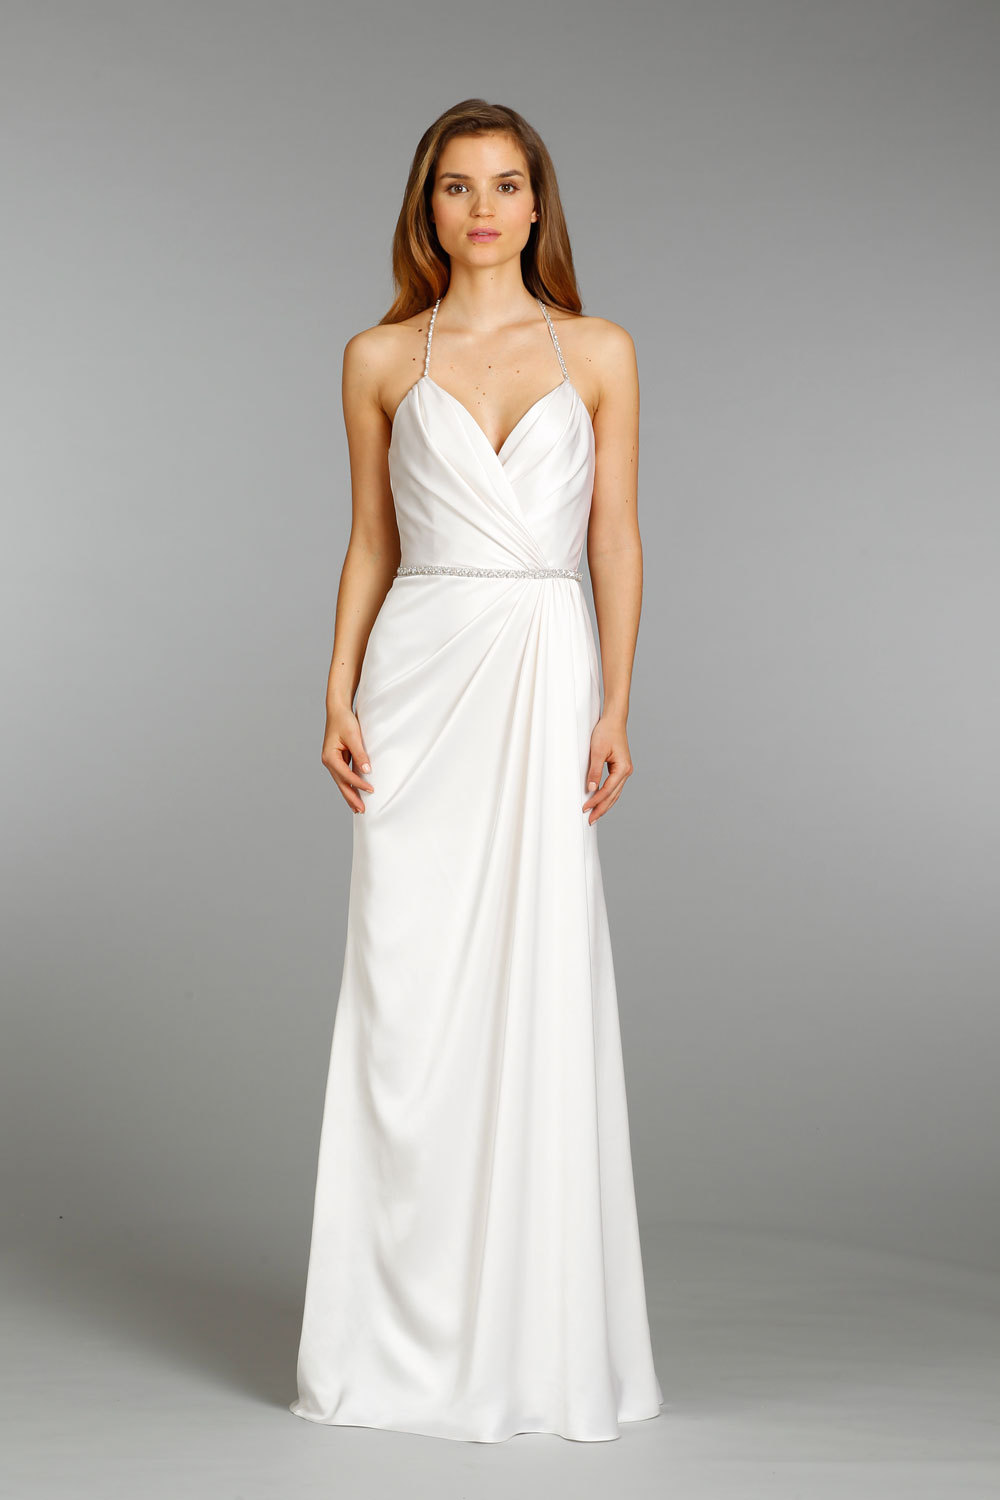 jim hjelm wedding dress fall 2013 bridal 8362